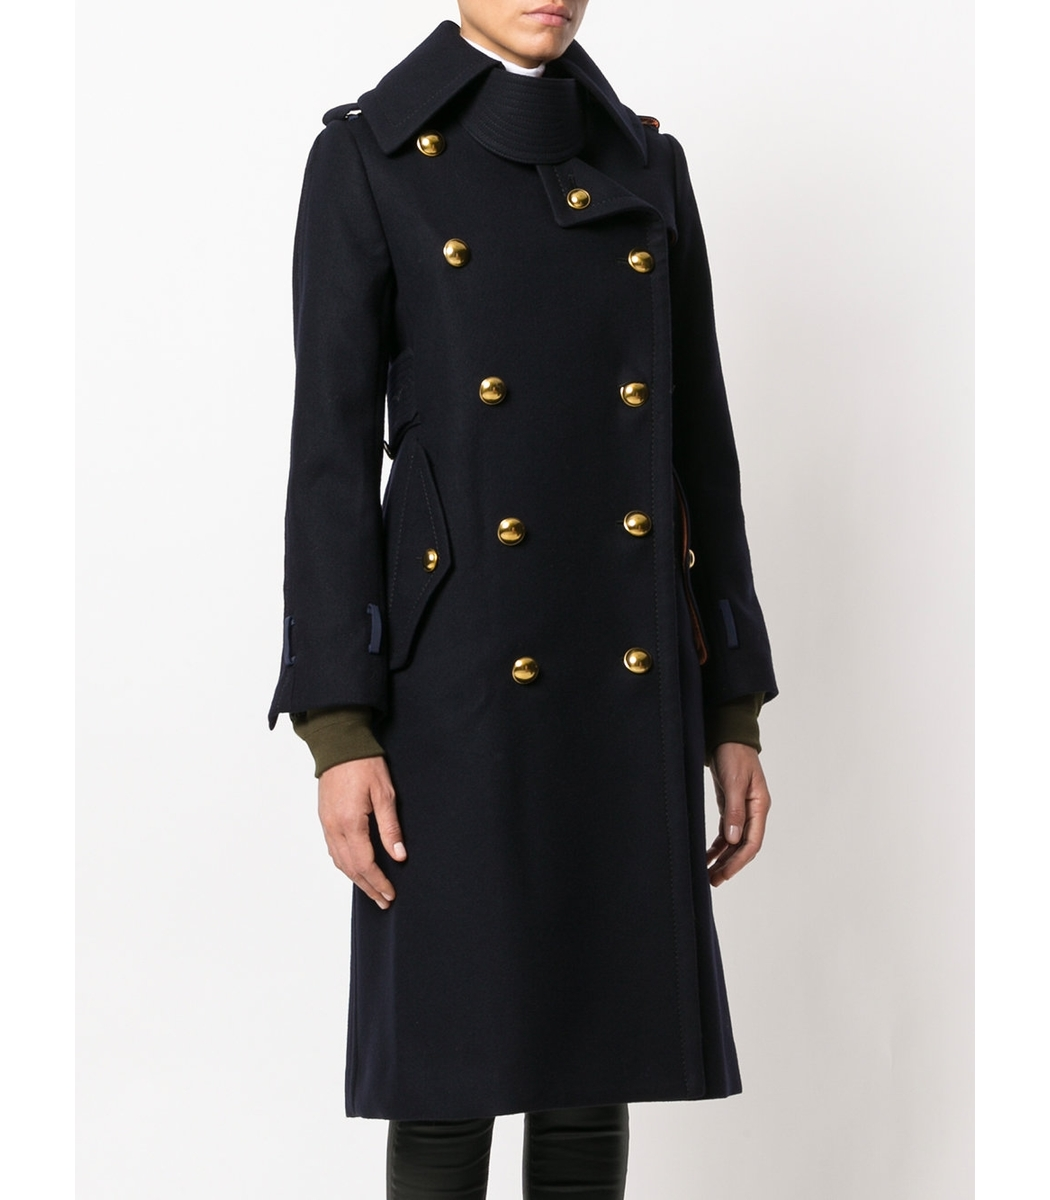 Sacai Shell Trimmed Melton Wool Coat - Navy/Gold Nylon Coat